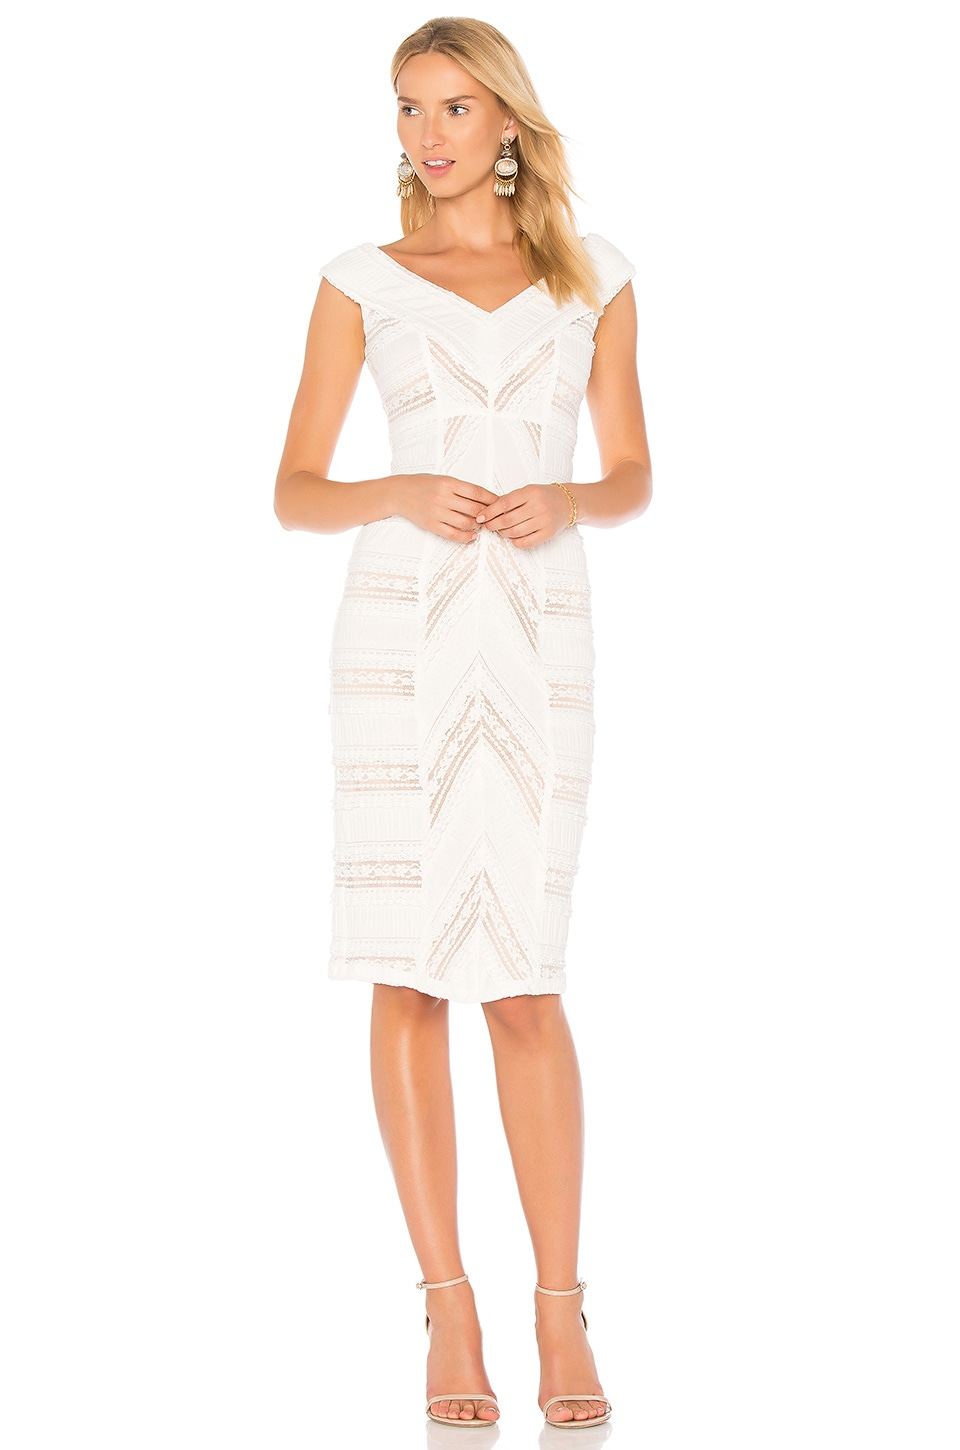 Aveline Dress by Cinq A Sept